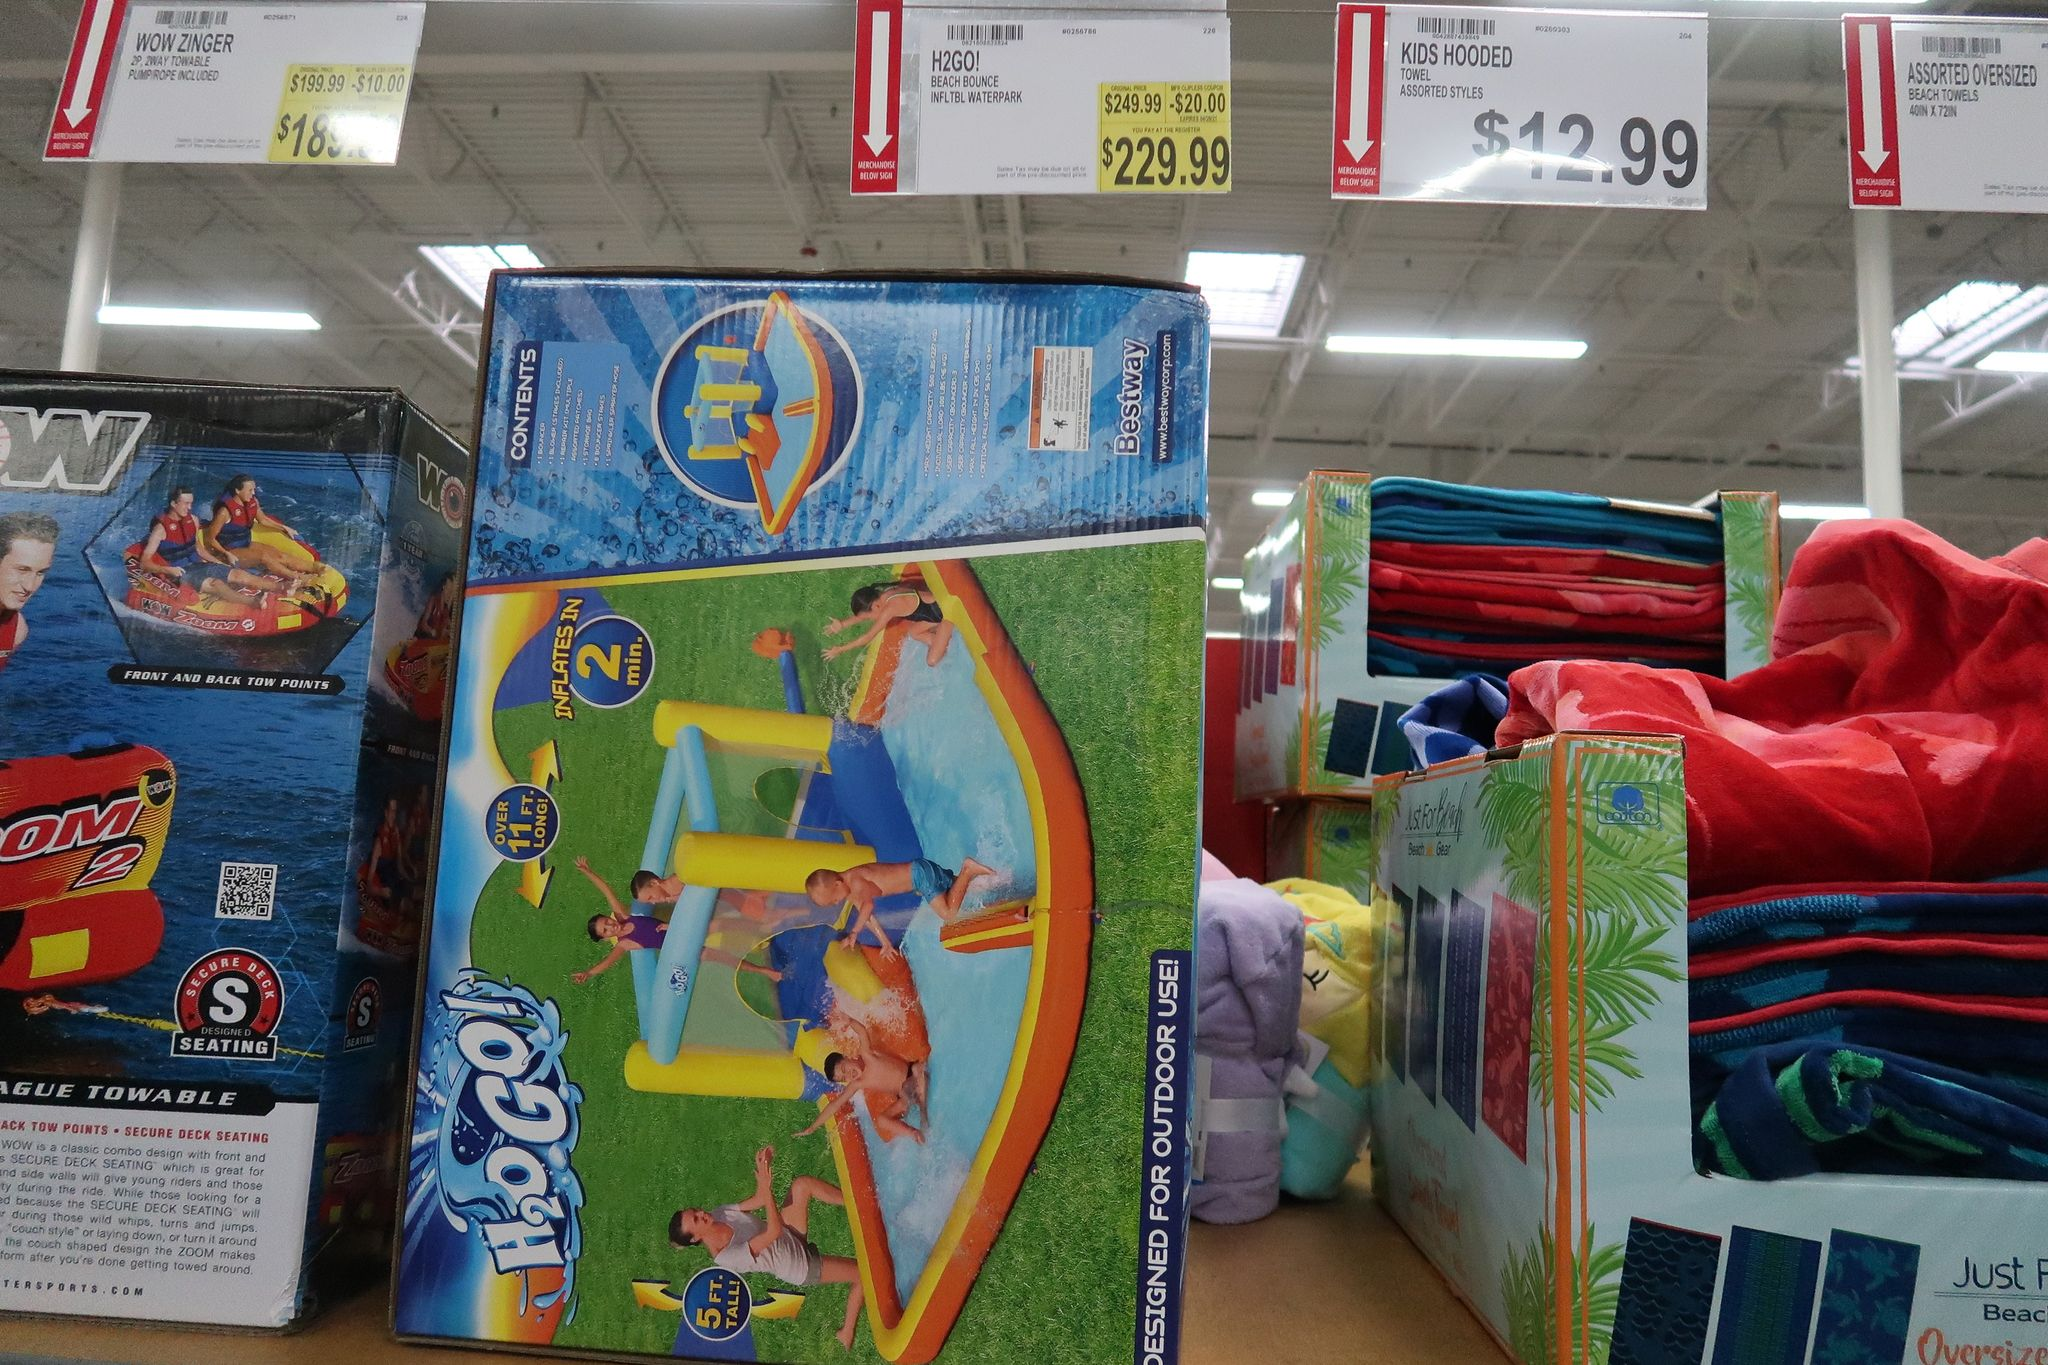 H2OGO Inflatable Bounce House Pool $229.99